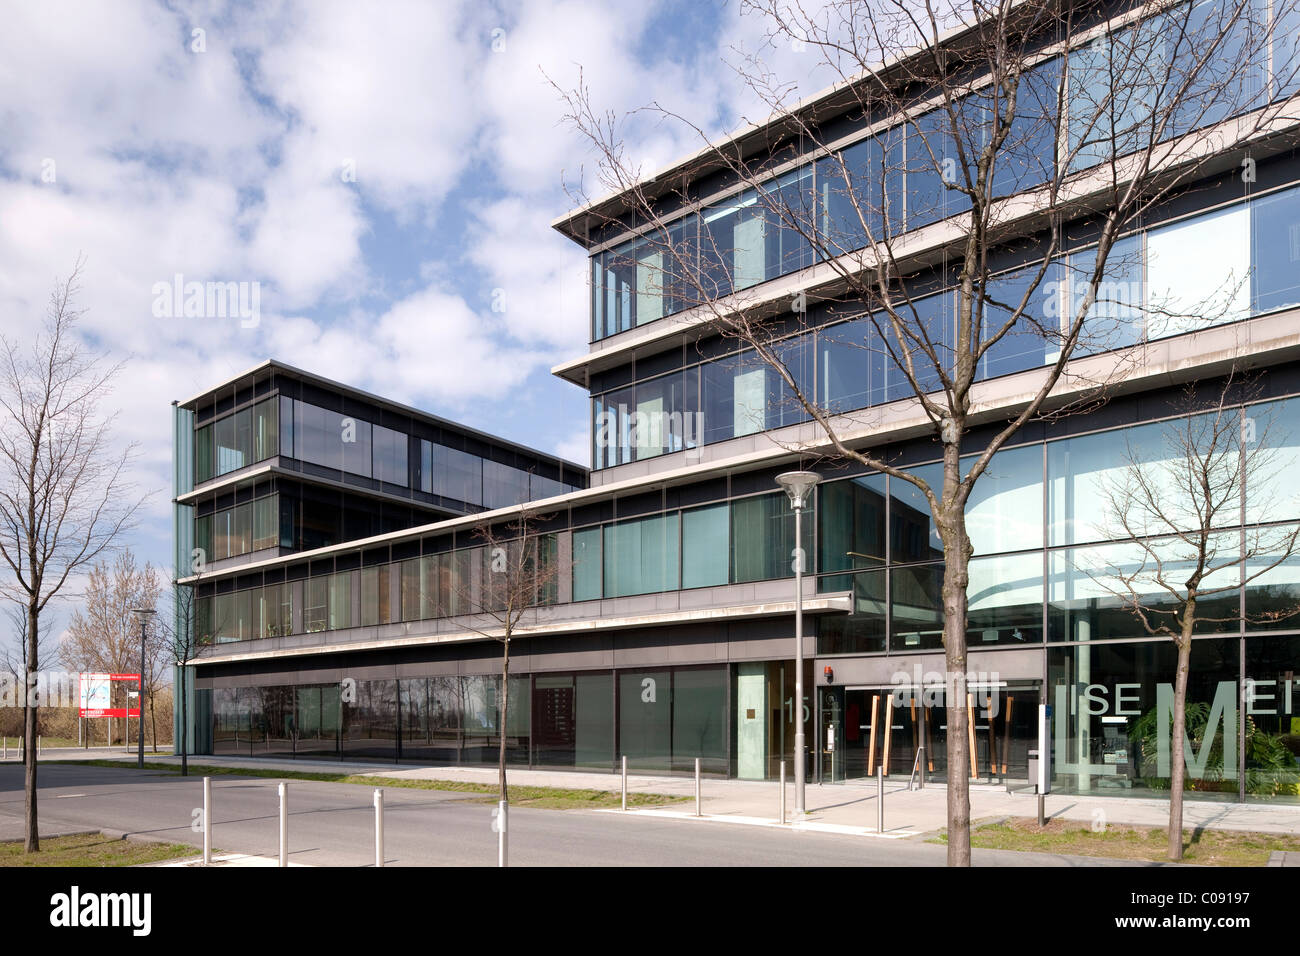 Lise-Meitner-Haus building, Institute of Physics, Humboldt-Universitaet university, Wissenschaftsstadt Adlershof - Stock Image